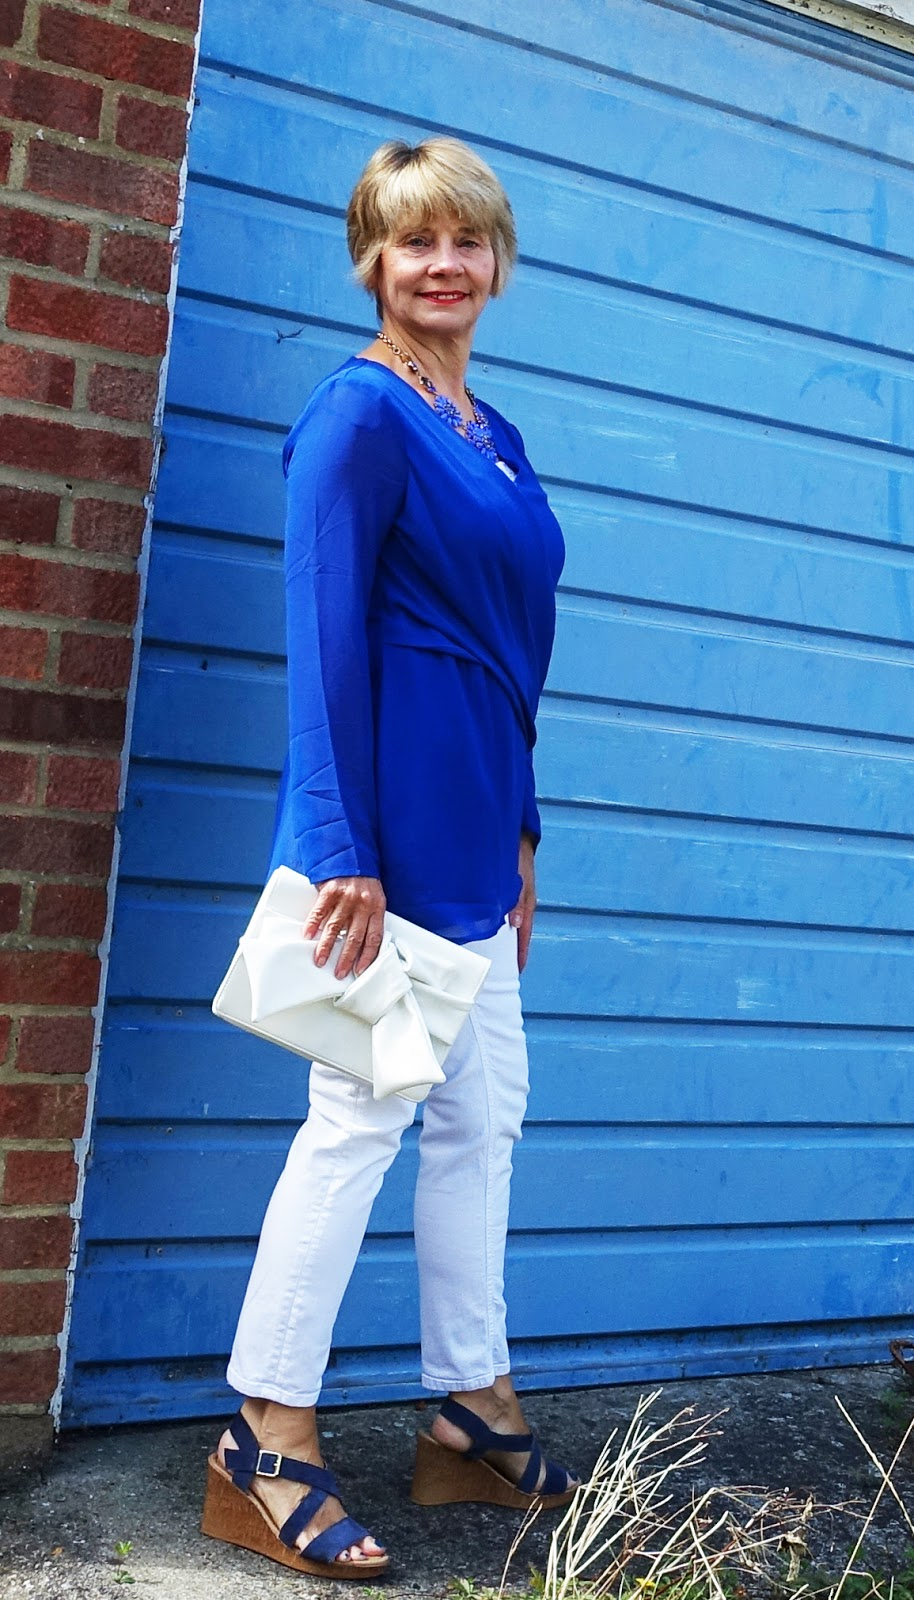 Patnering a drapey cobalt blue top with jeans gives it a casual but polished edge